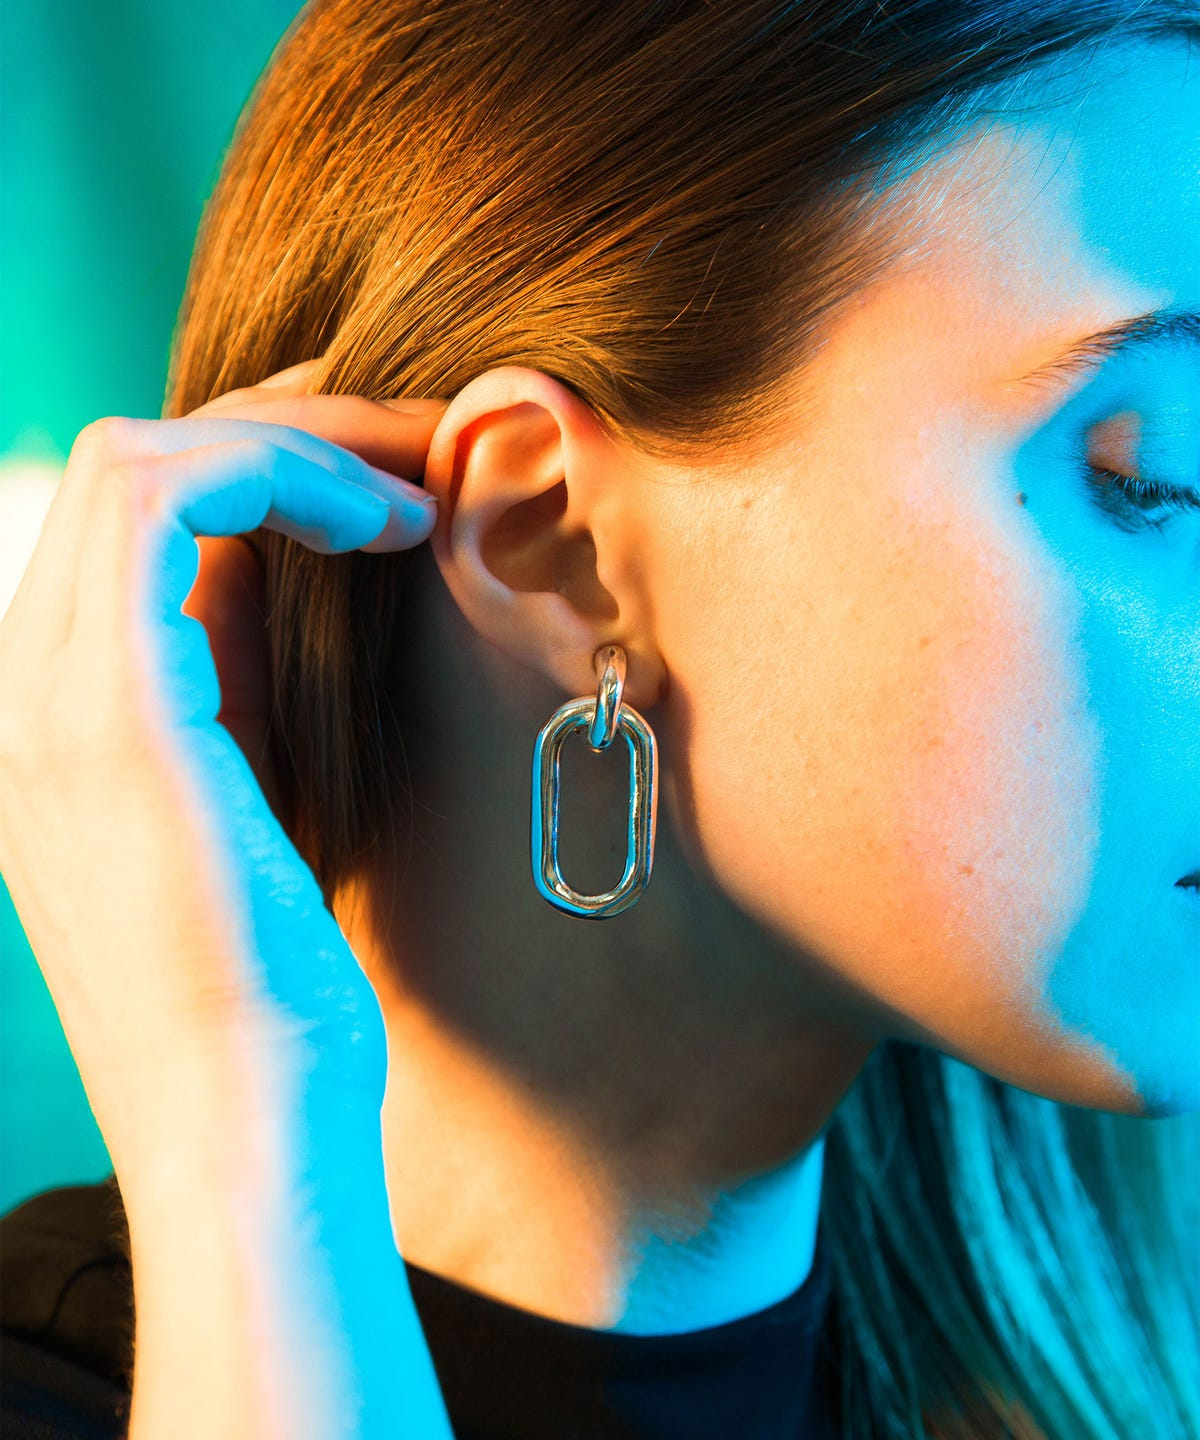 How To Treat Infected Ear Piercings, From Dermatologist